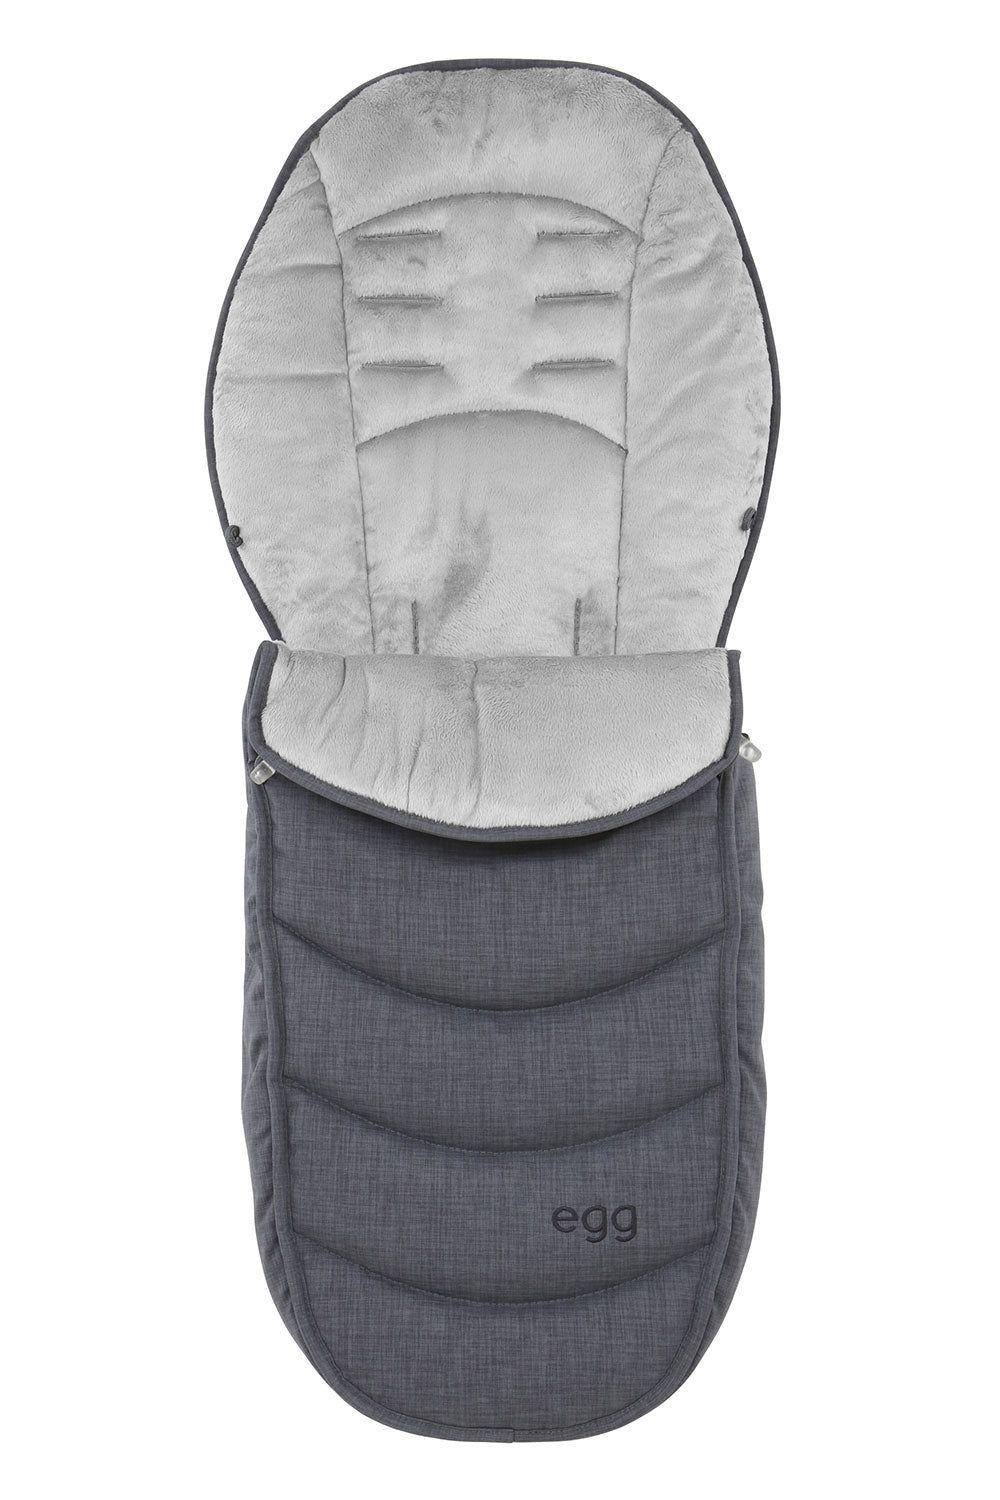 EGG Footmuff Quantum Grey